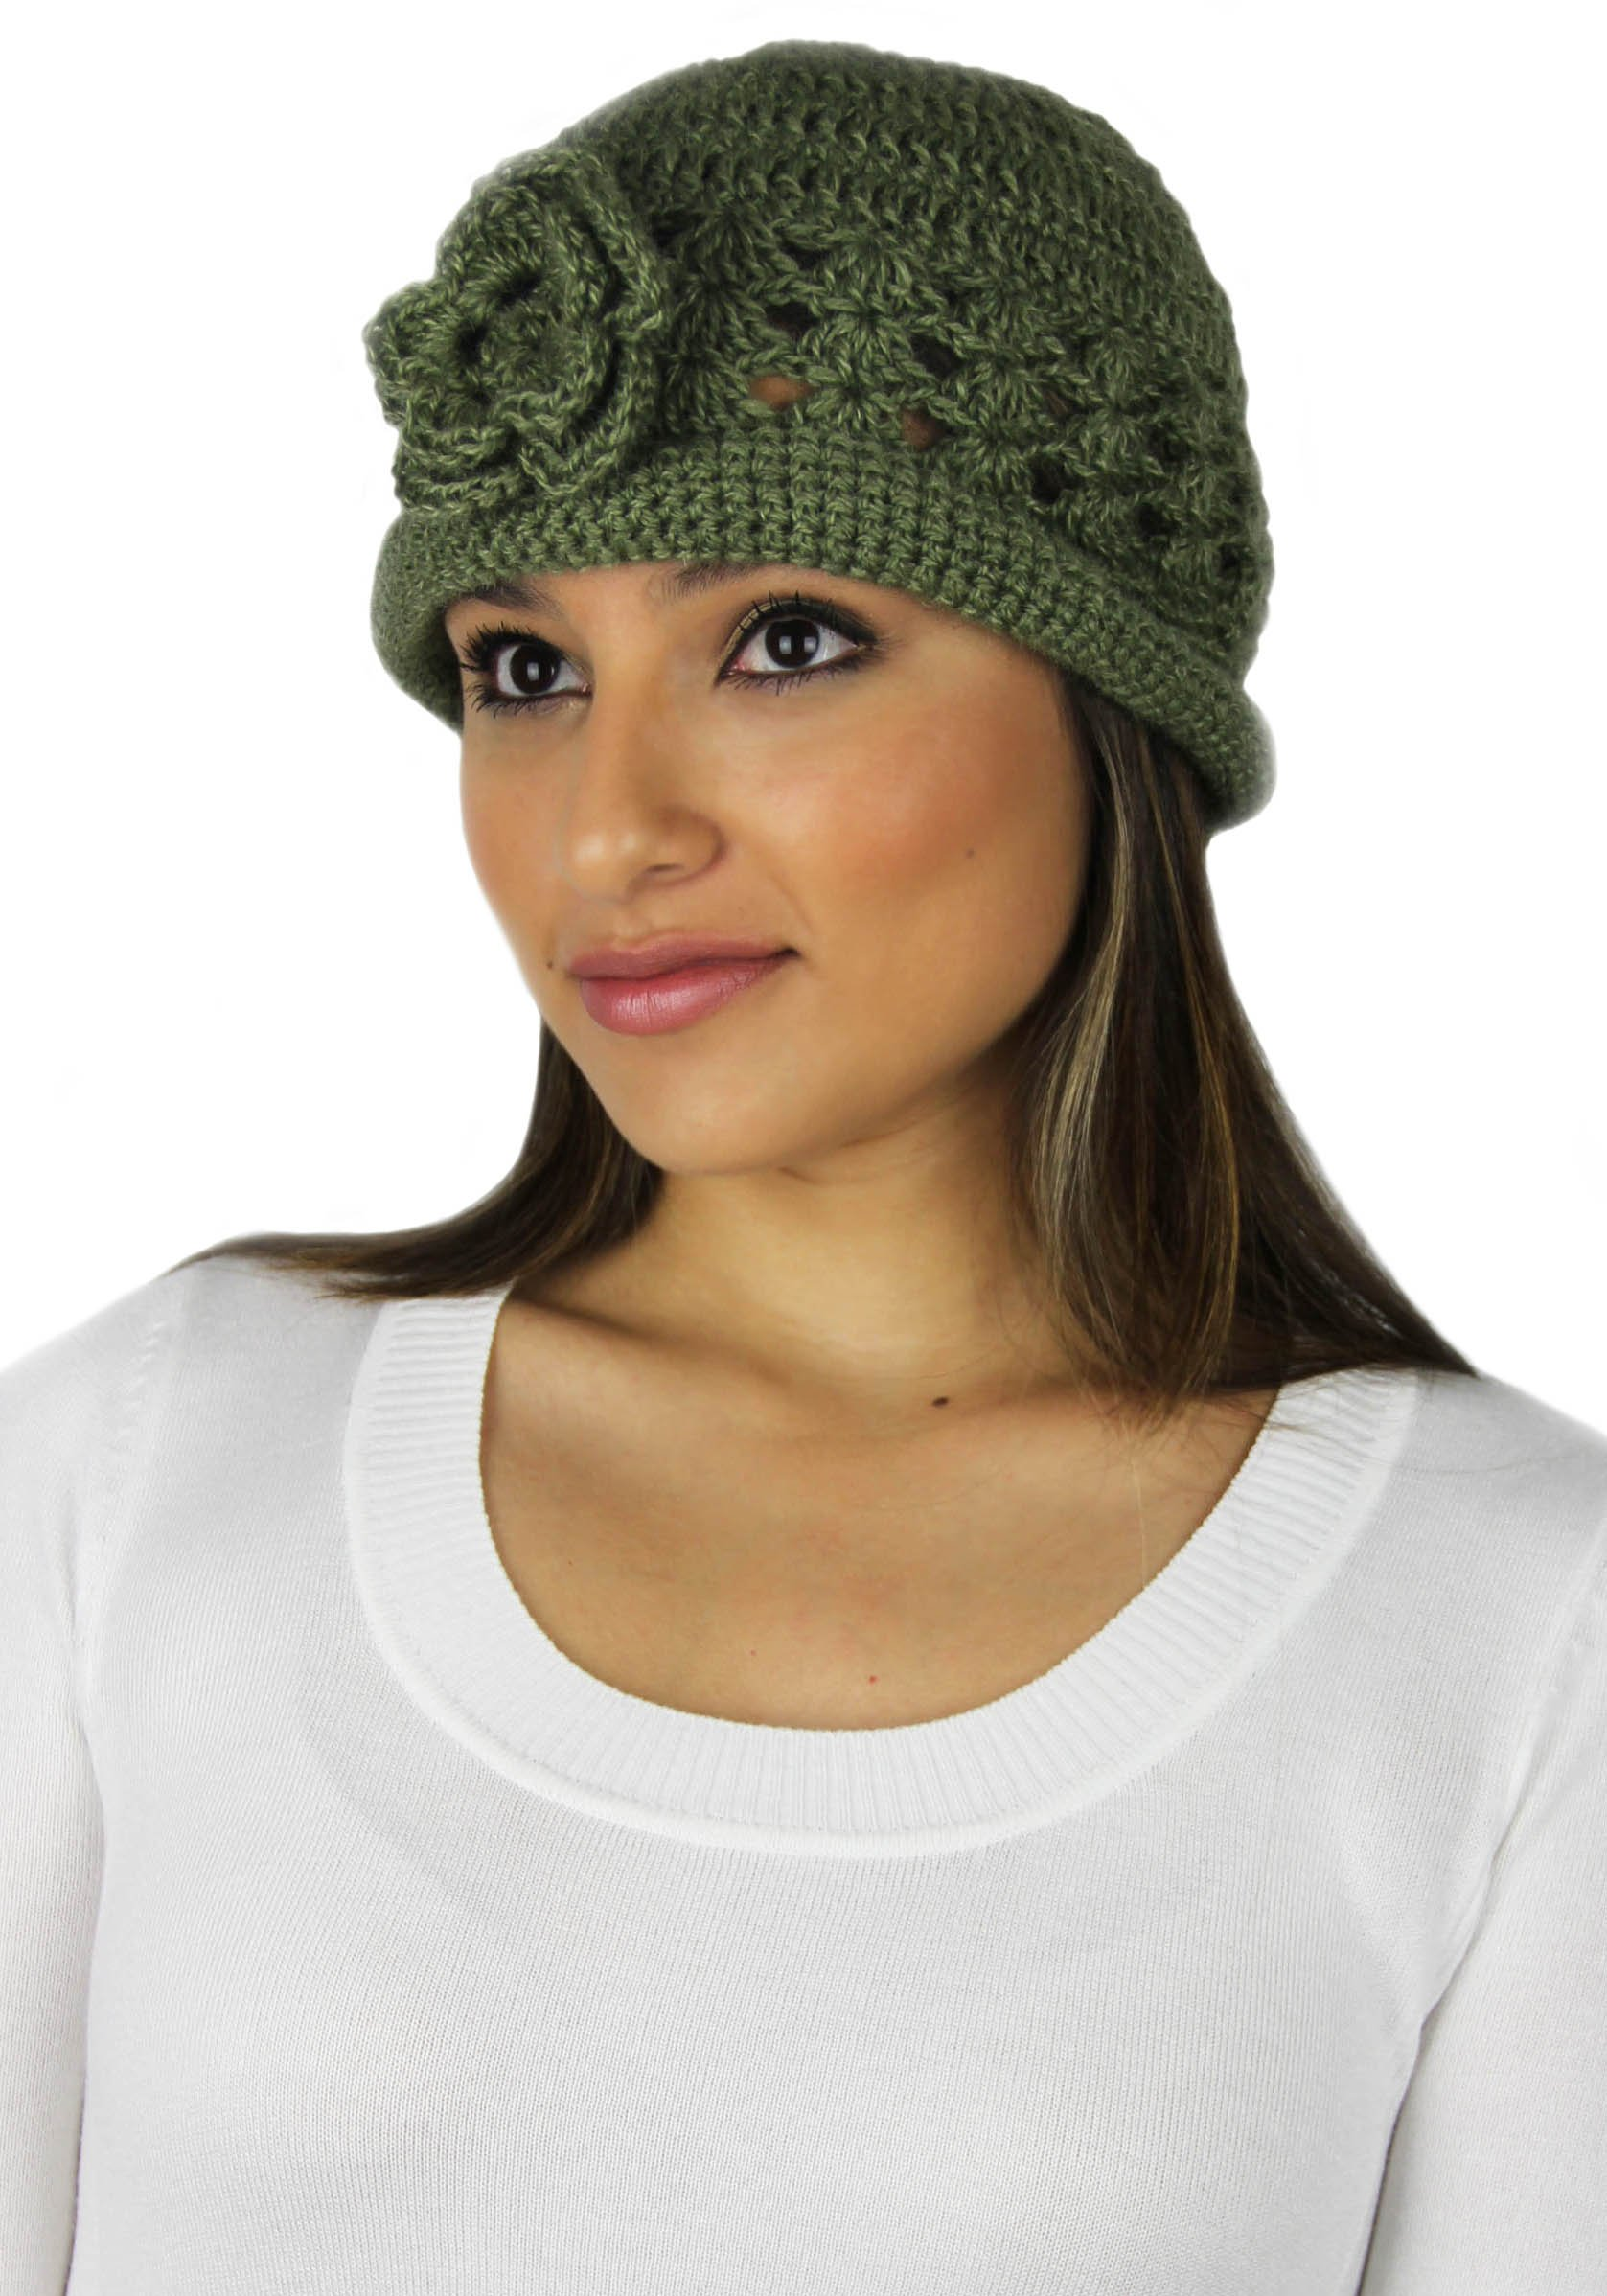 MADE TO ORDER IN ANY COLOR - Vintage Inspired Alpaca and Wool Hat (Olive) by BARBERY Alpaca Accessories